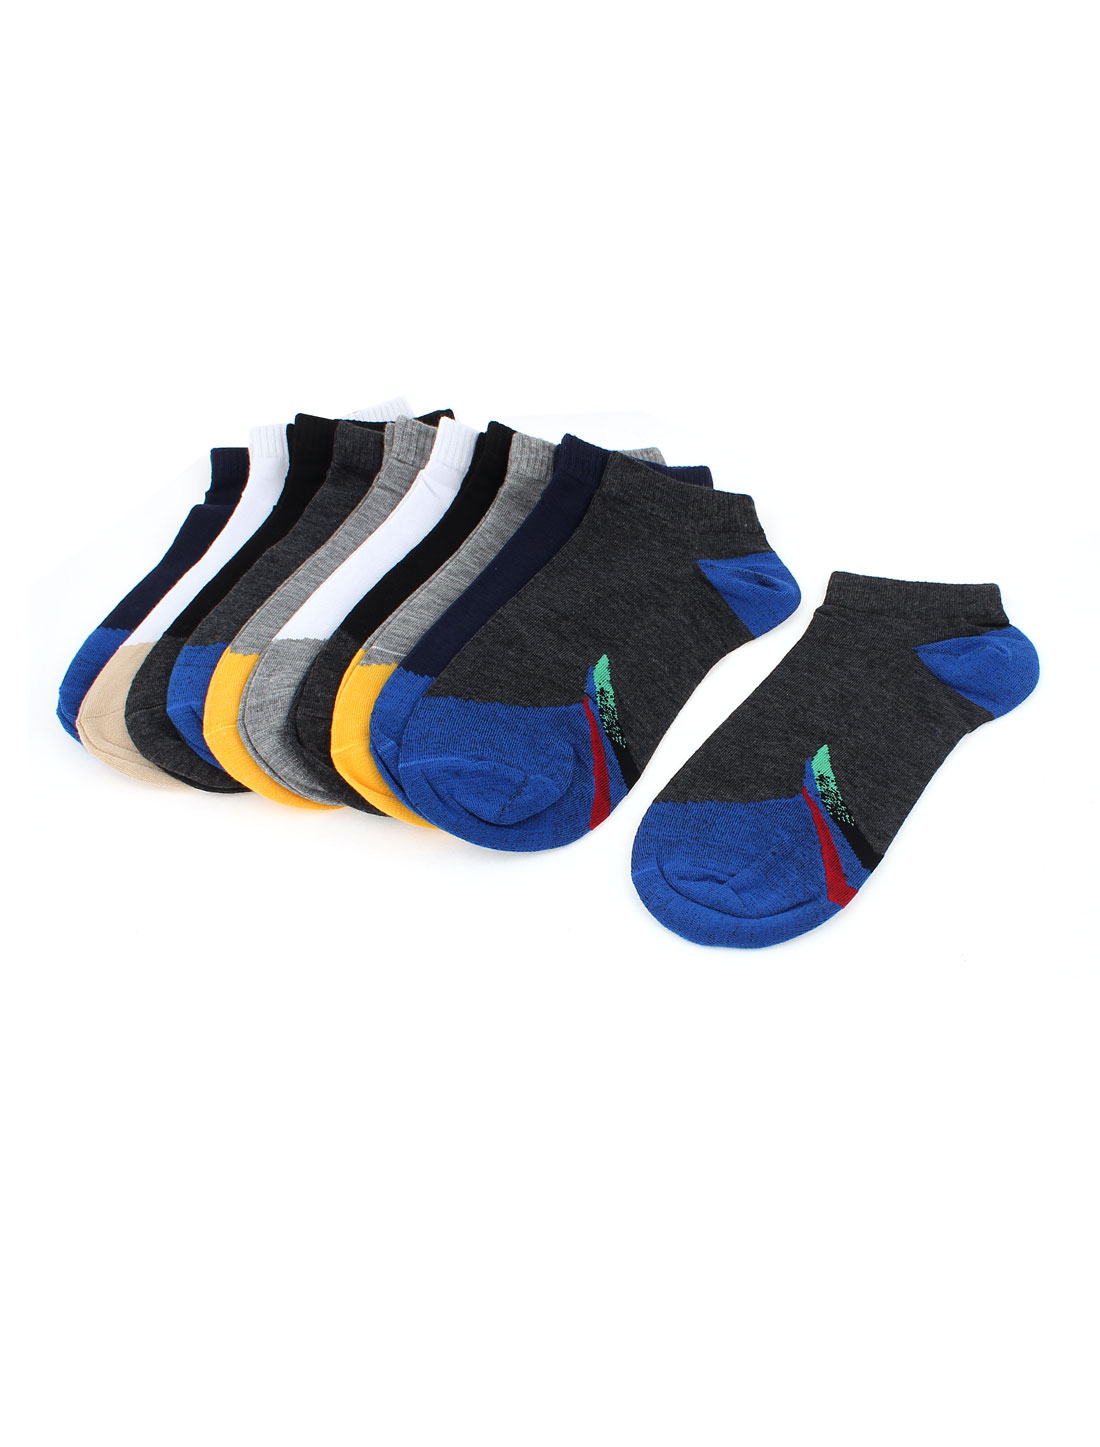 Stretchy Cotton Blends Sports Athletic Socks for Men 10 Pairs Assorted Color